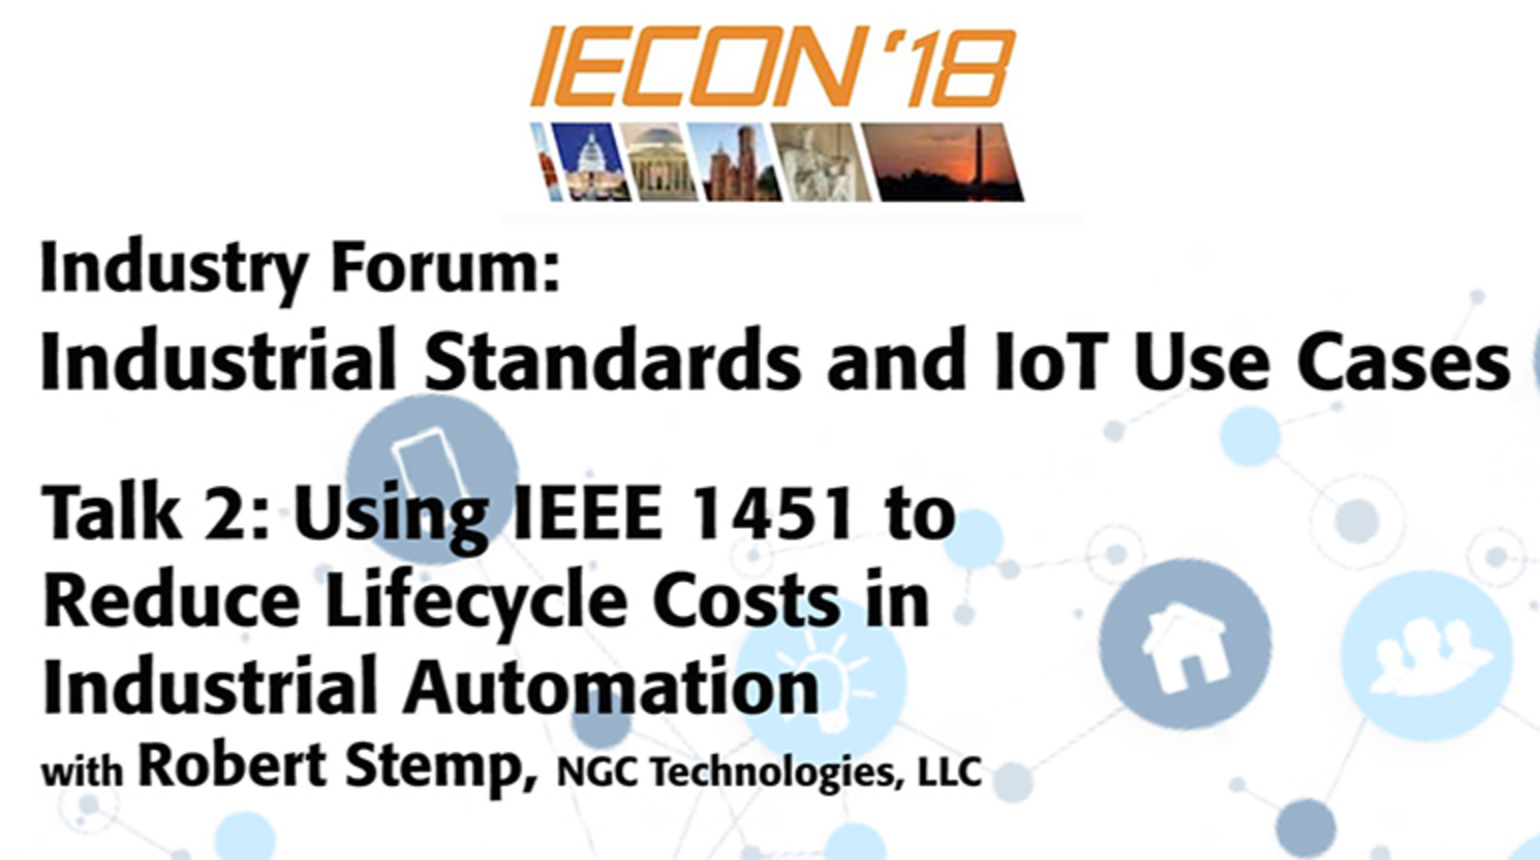 Industrial Standards and IoT Use Cases - Talk Two: IECON 2018